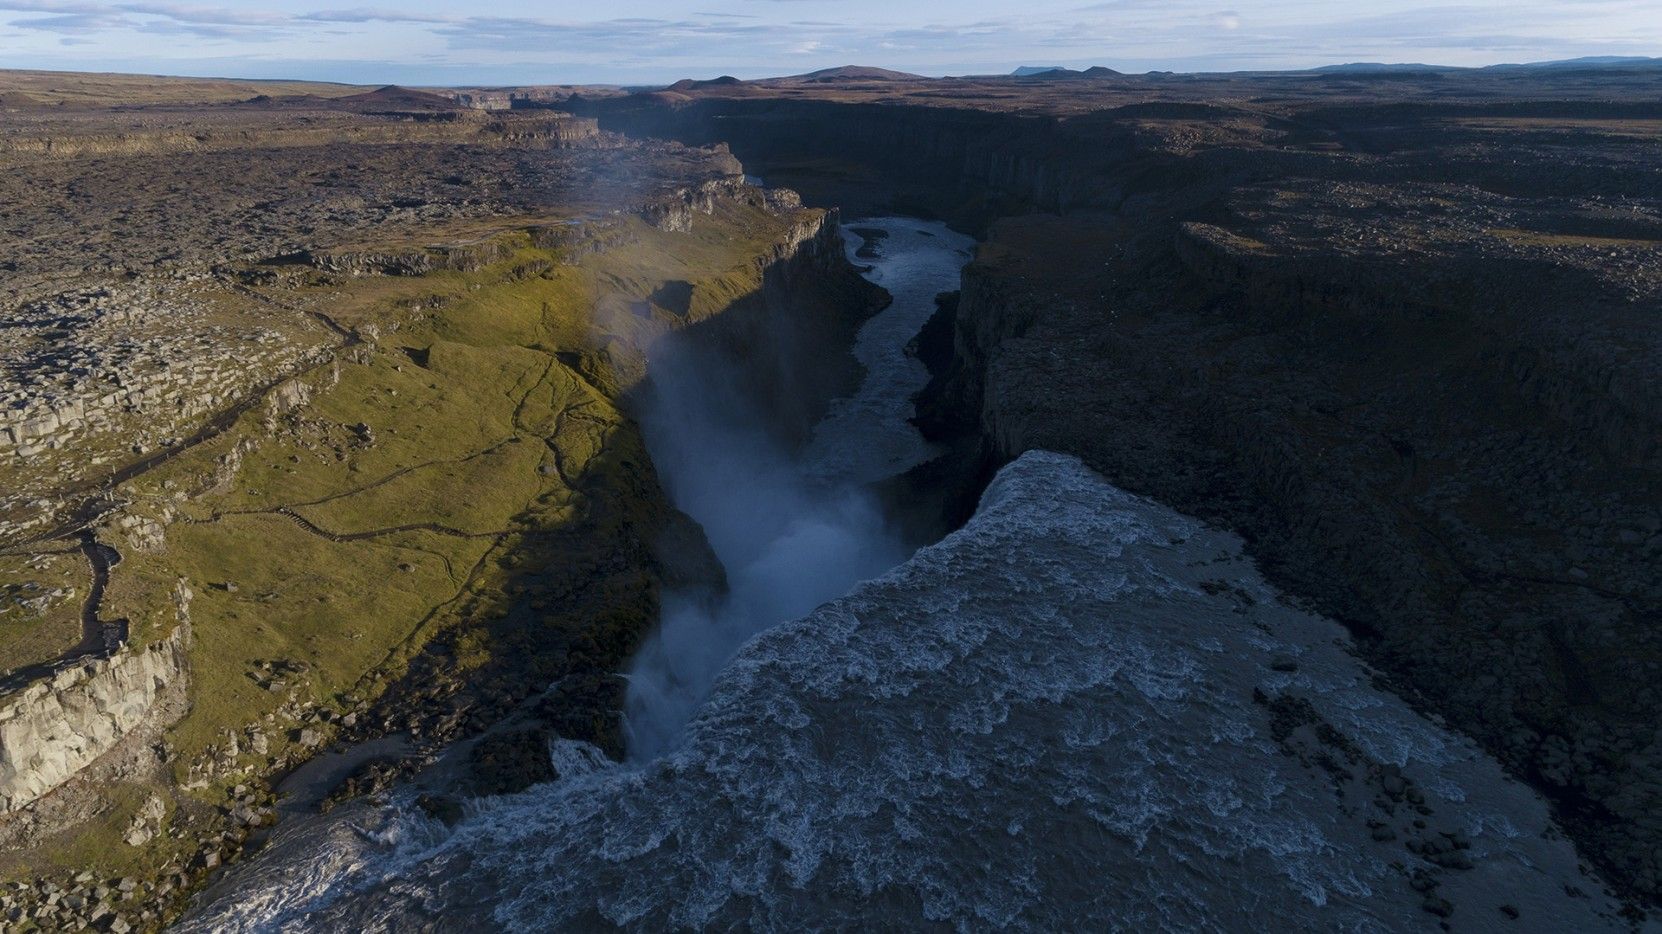 On the edge of Dettifoss